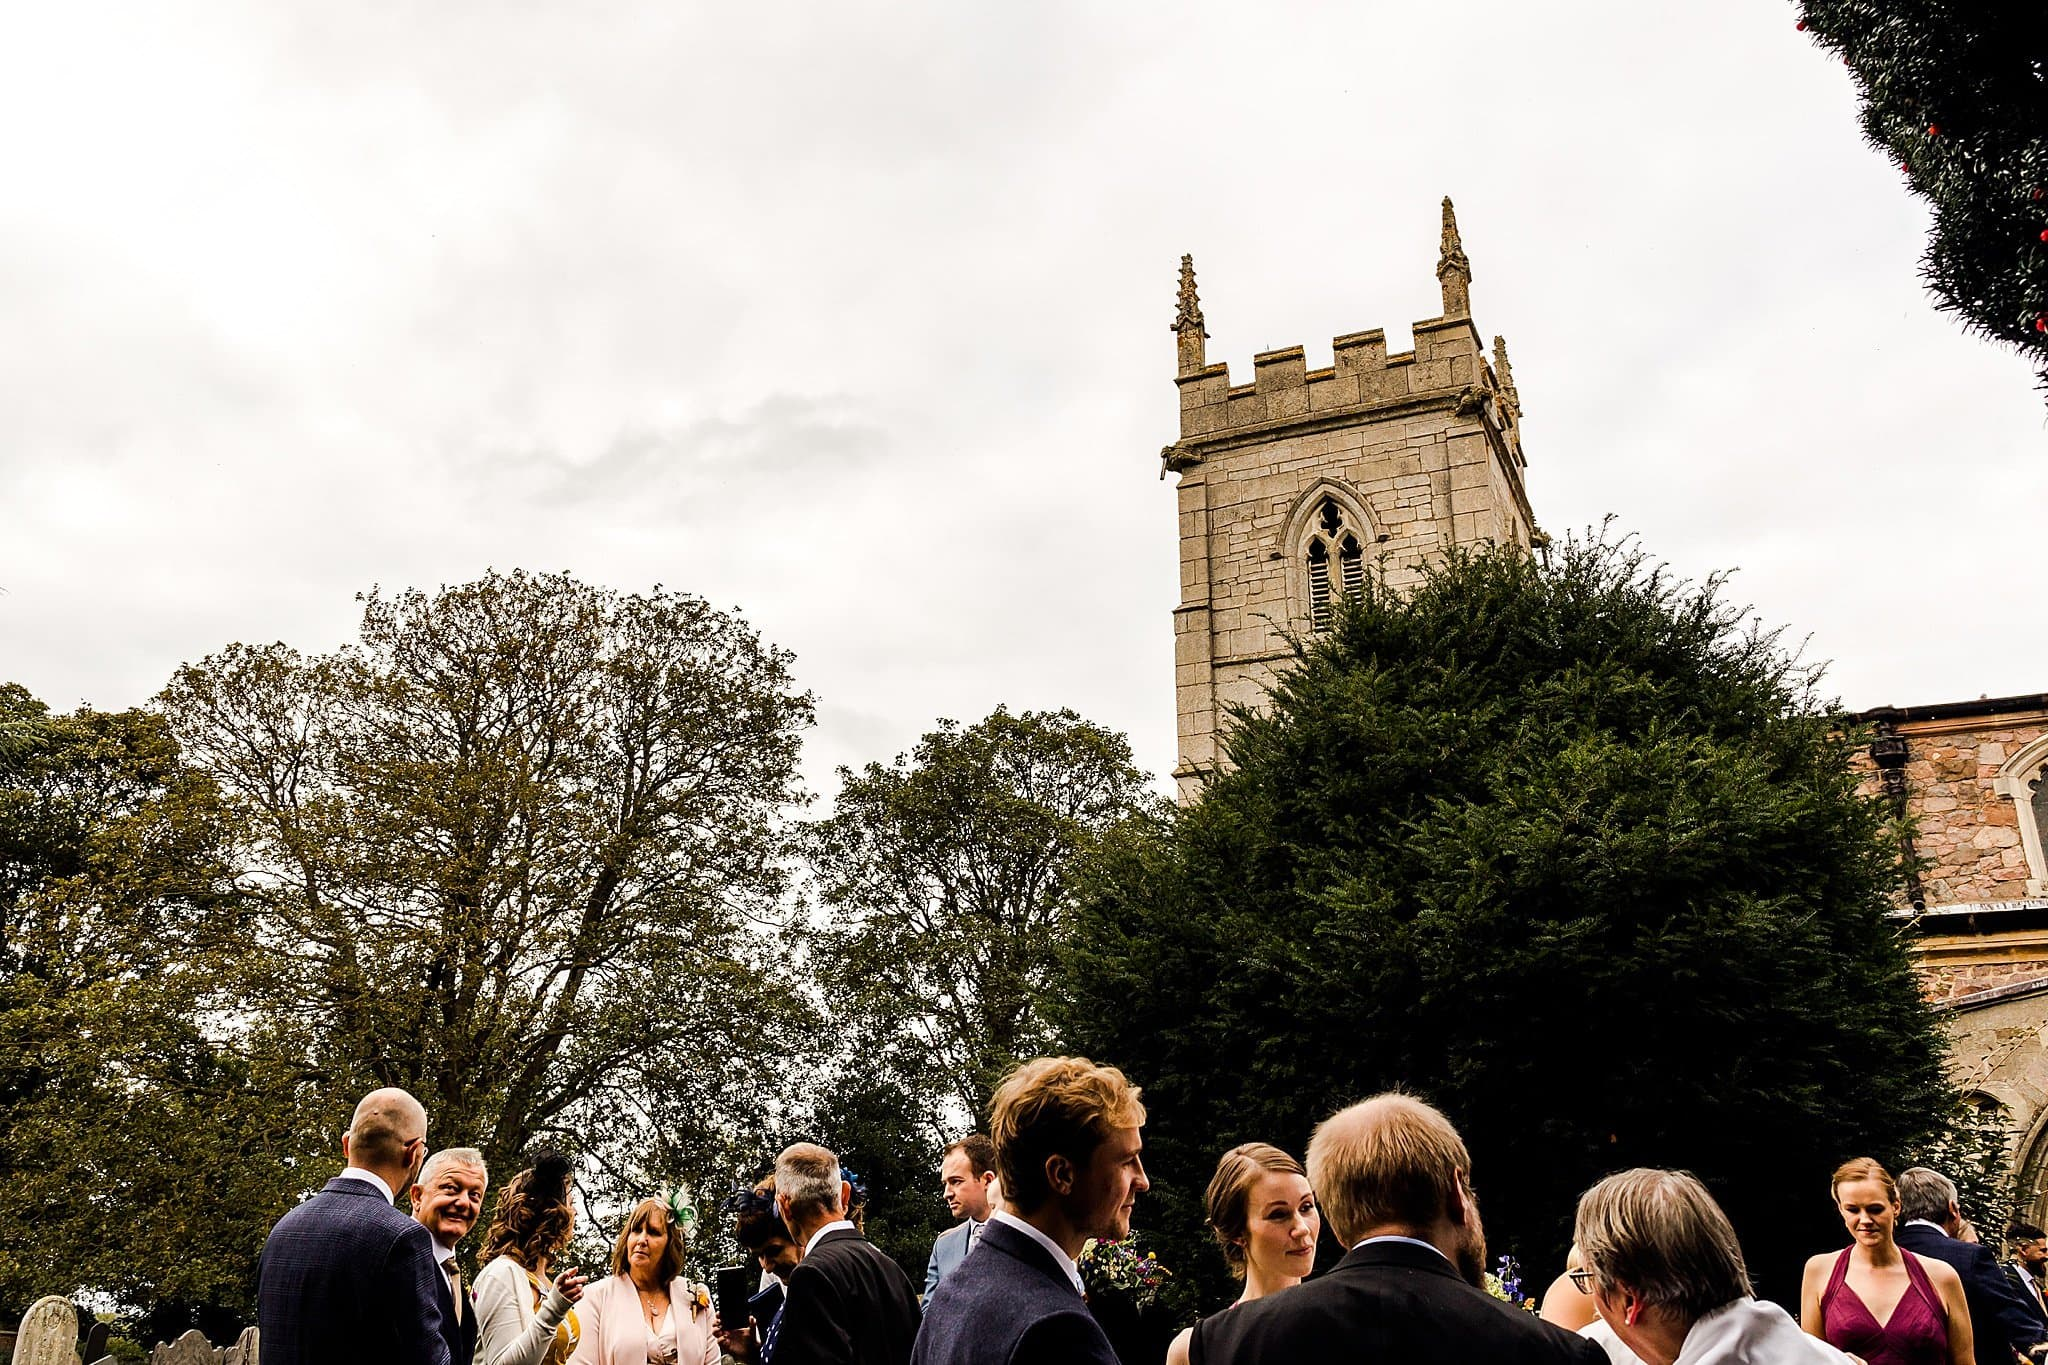 View of the Rearsby Church over the top of wedding guests